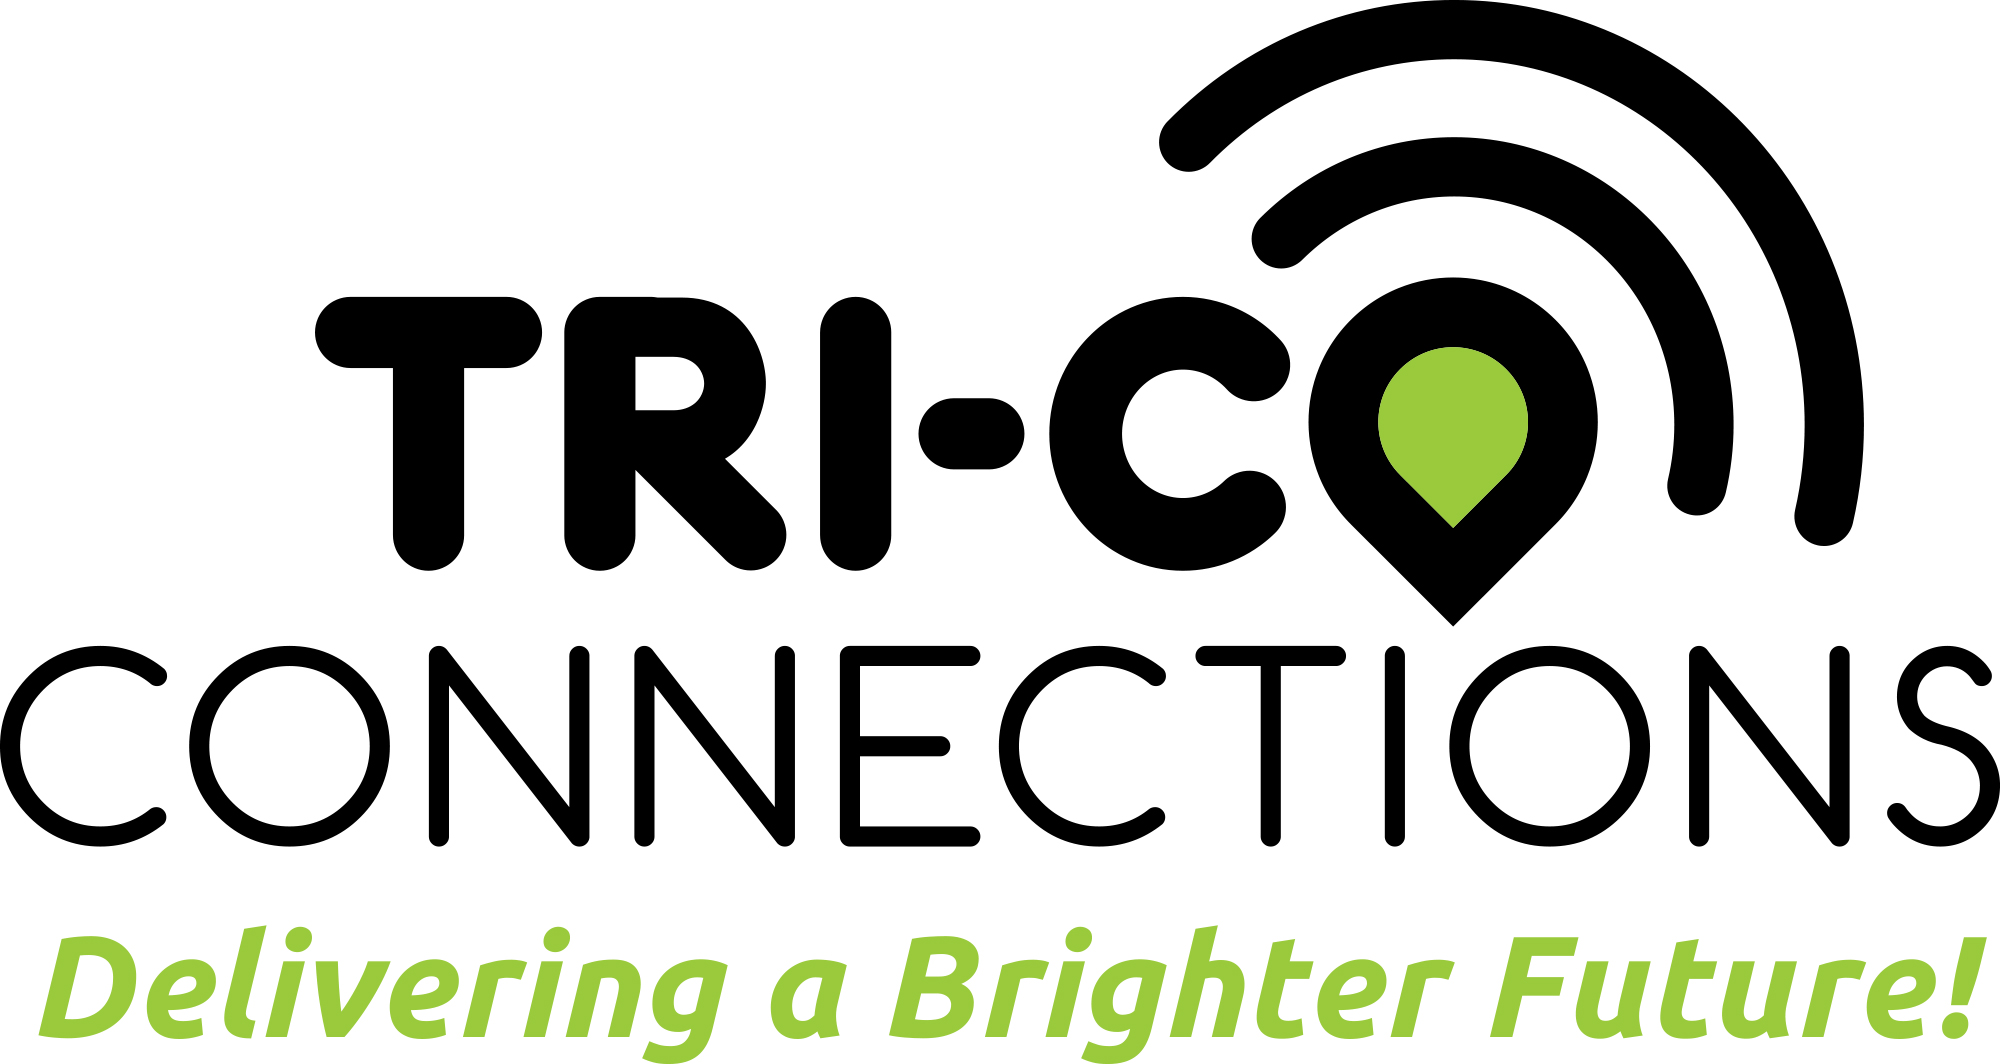 TriCo-Connections_RGB